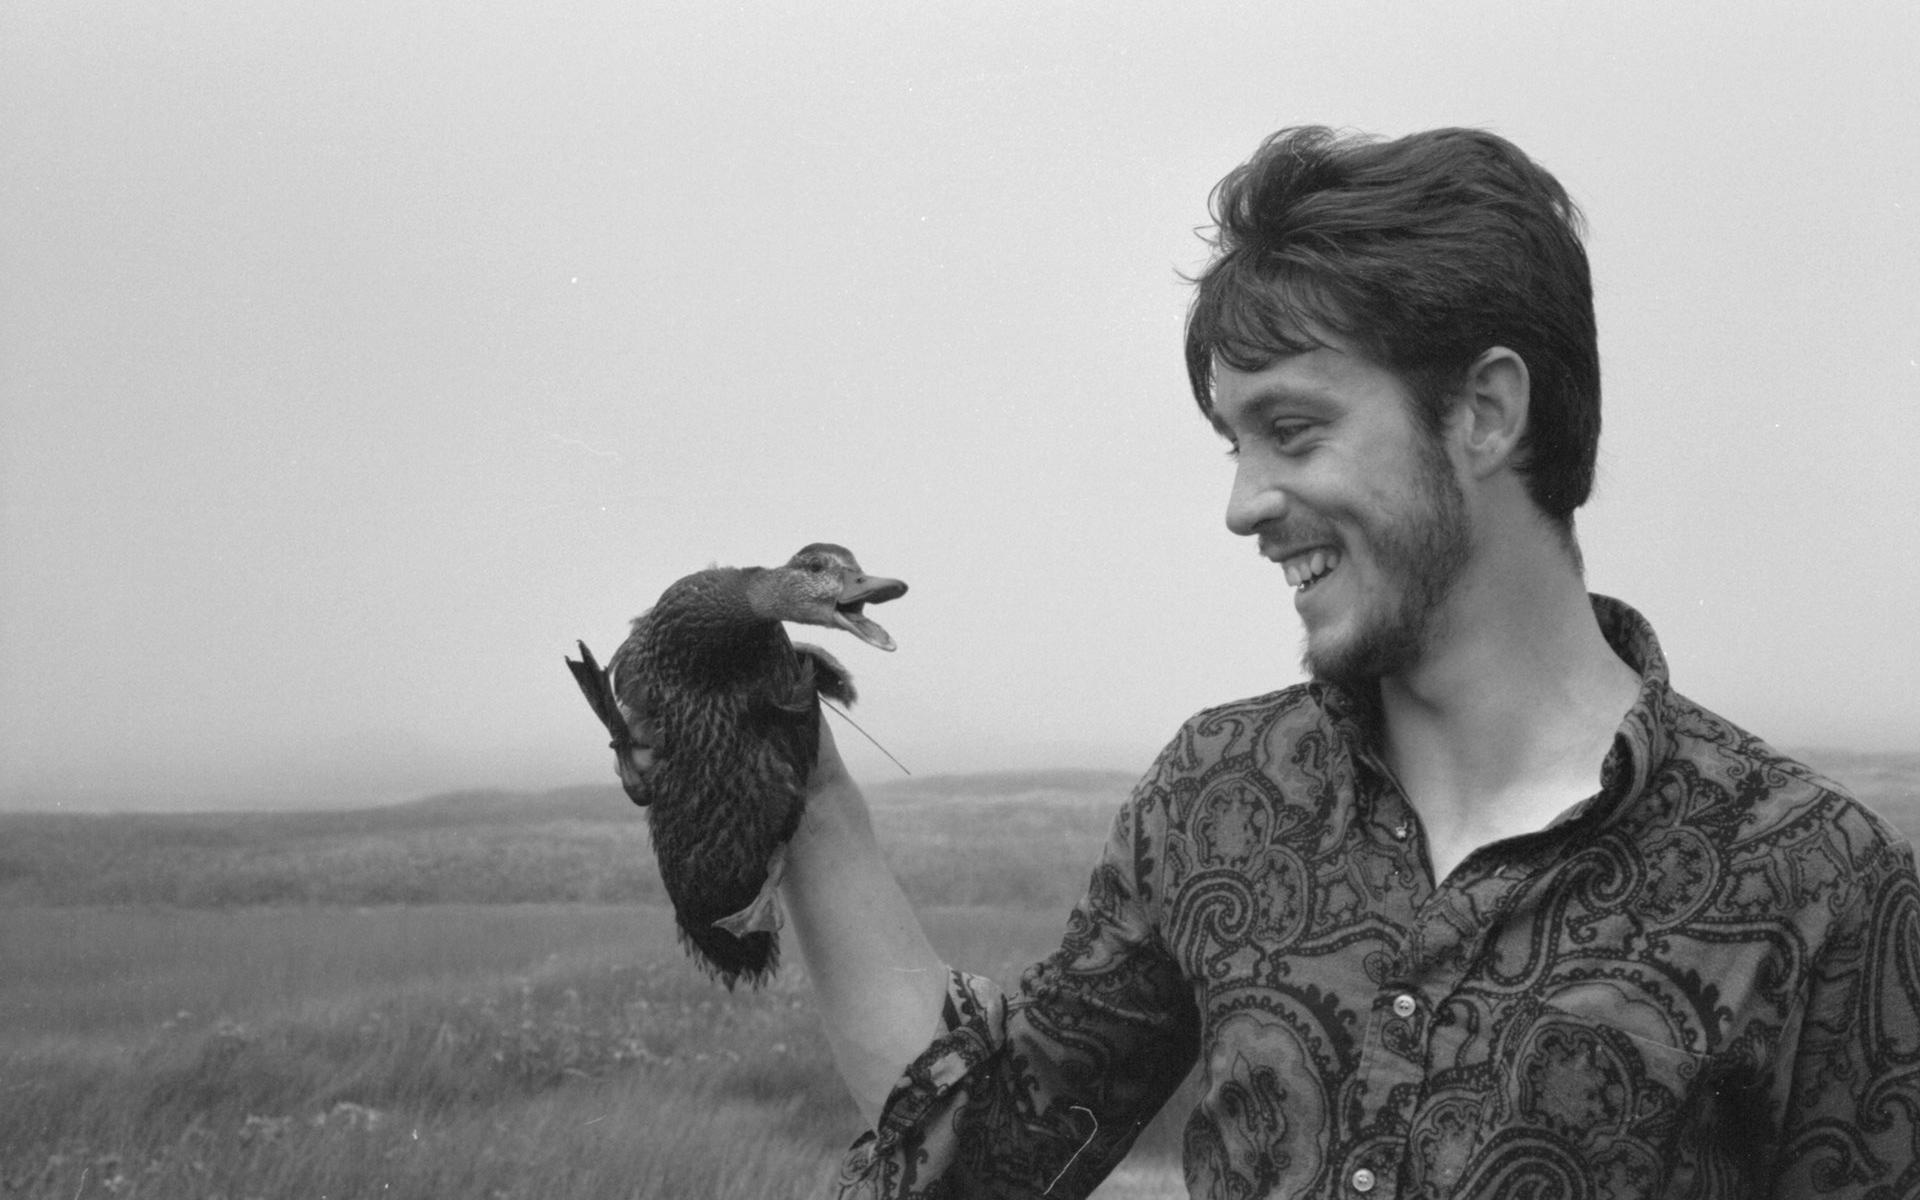 Pierre Norris of the meteorological station placing wild duckling back on nest